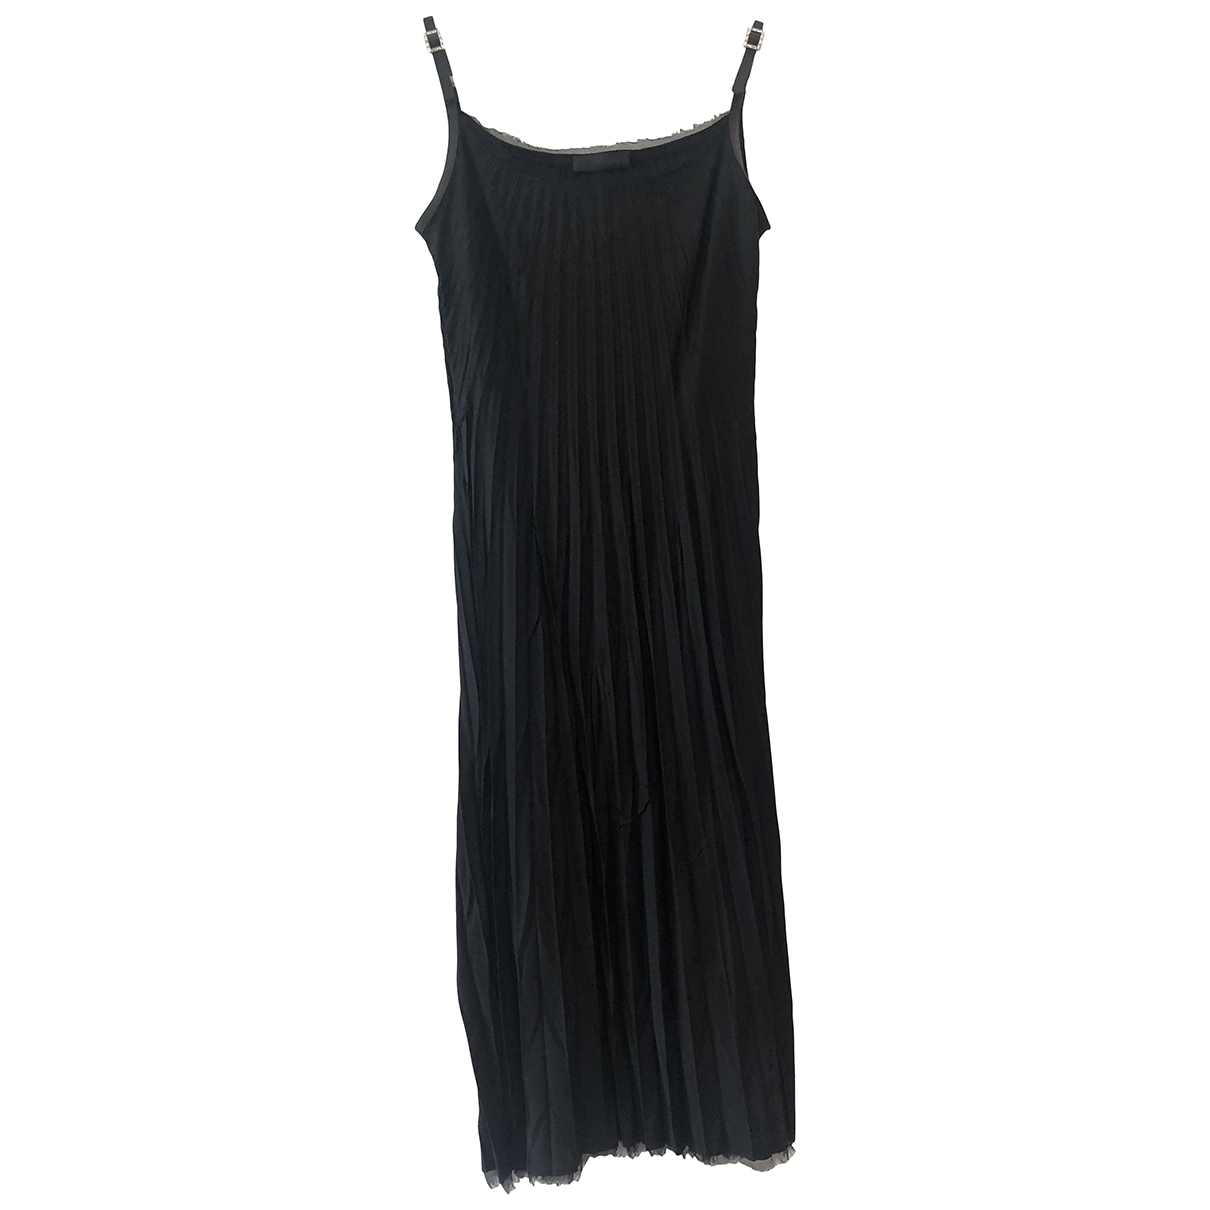 Ermanno Scervino \N Black dress for Women 36 FR